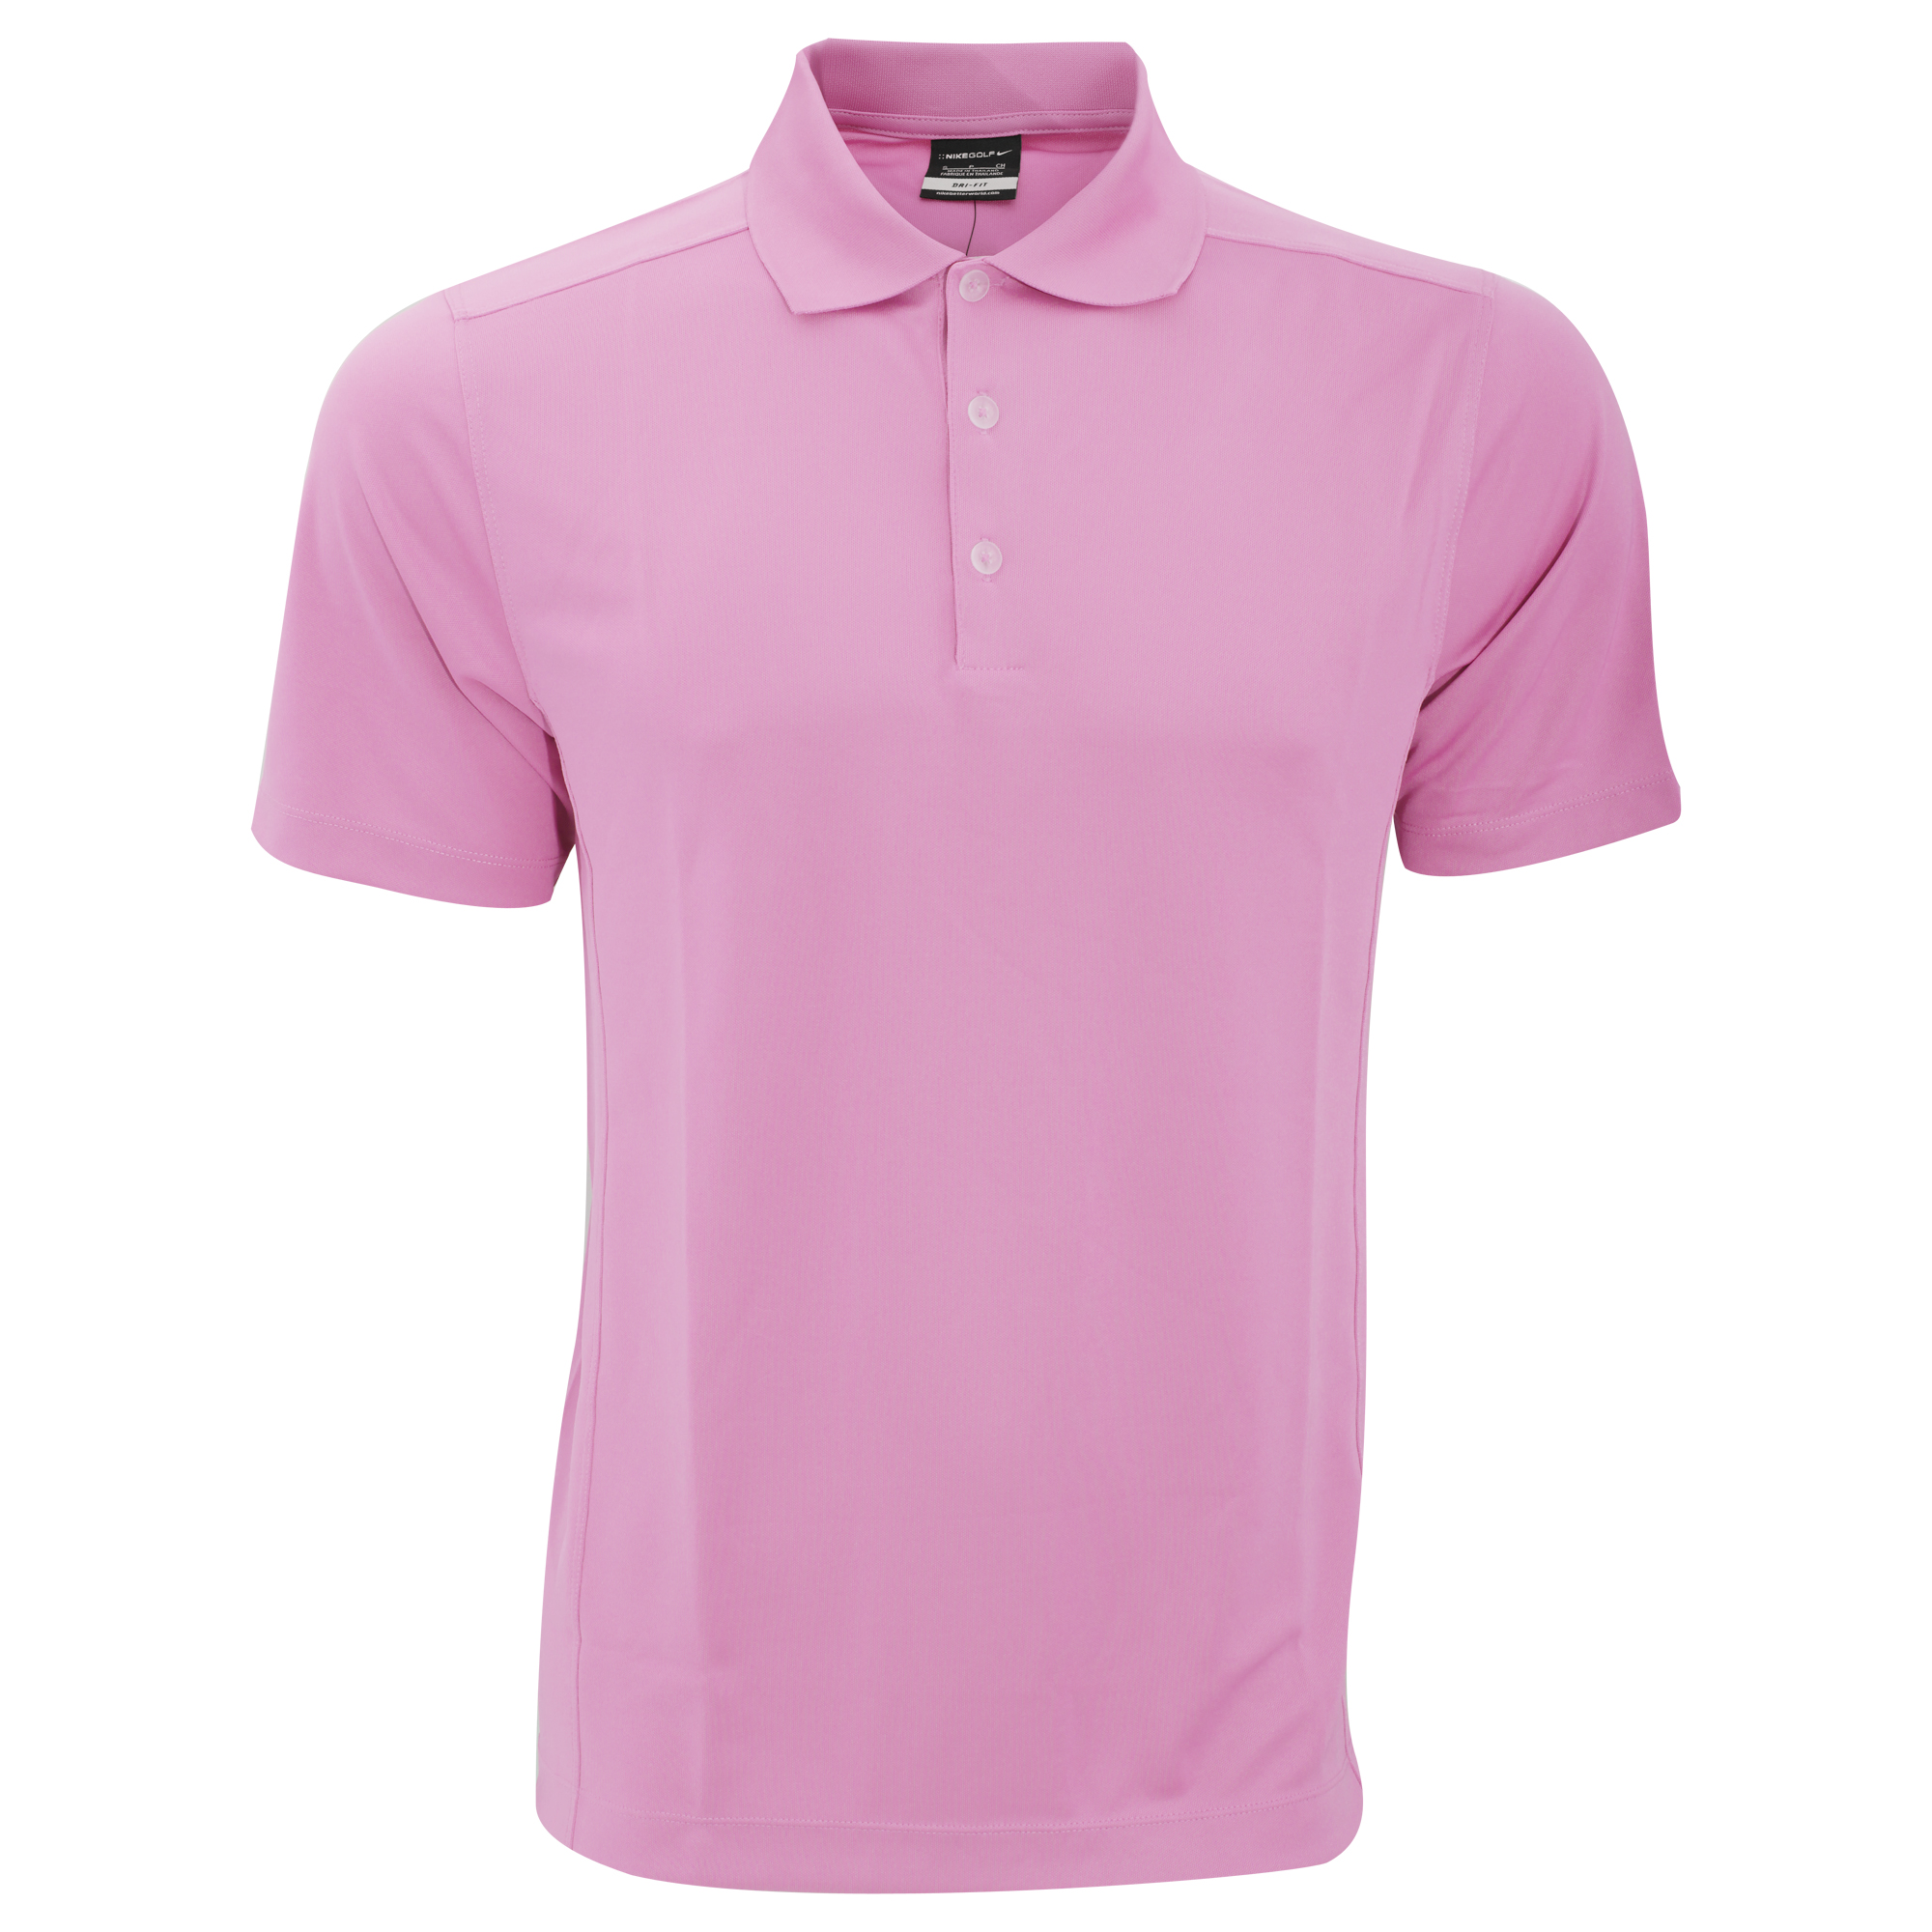 Nike mens dry fit sports plain short sleeve polo shirt t for Best mens sport shirts